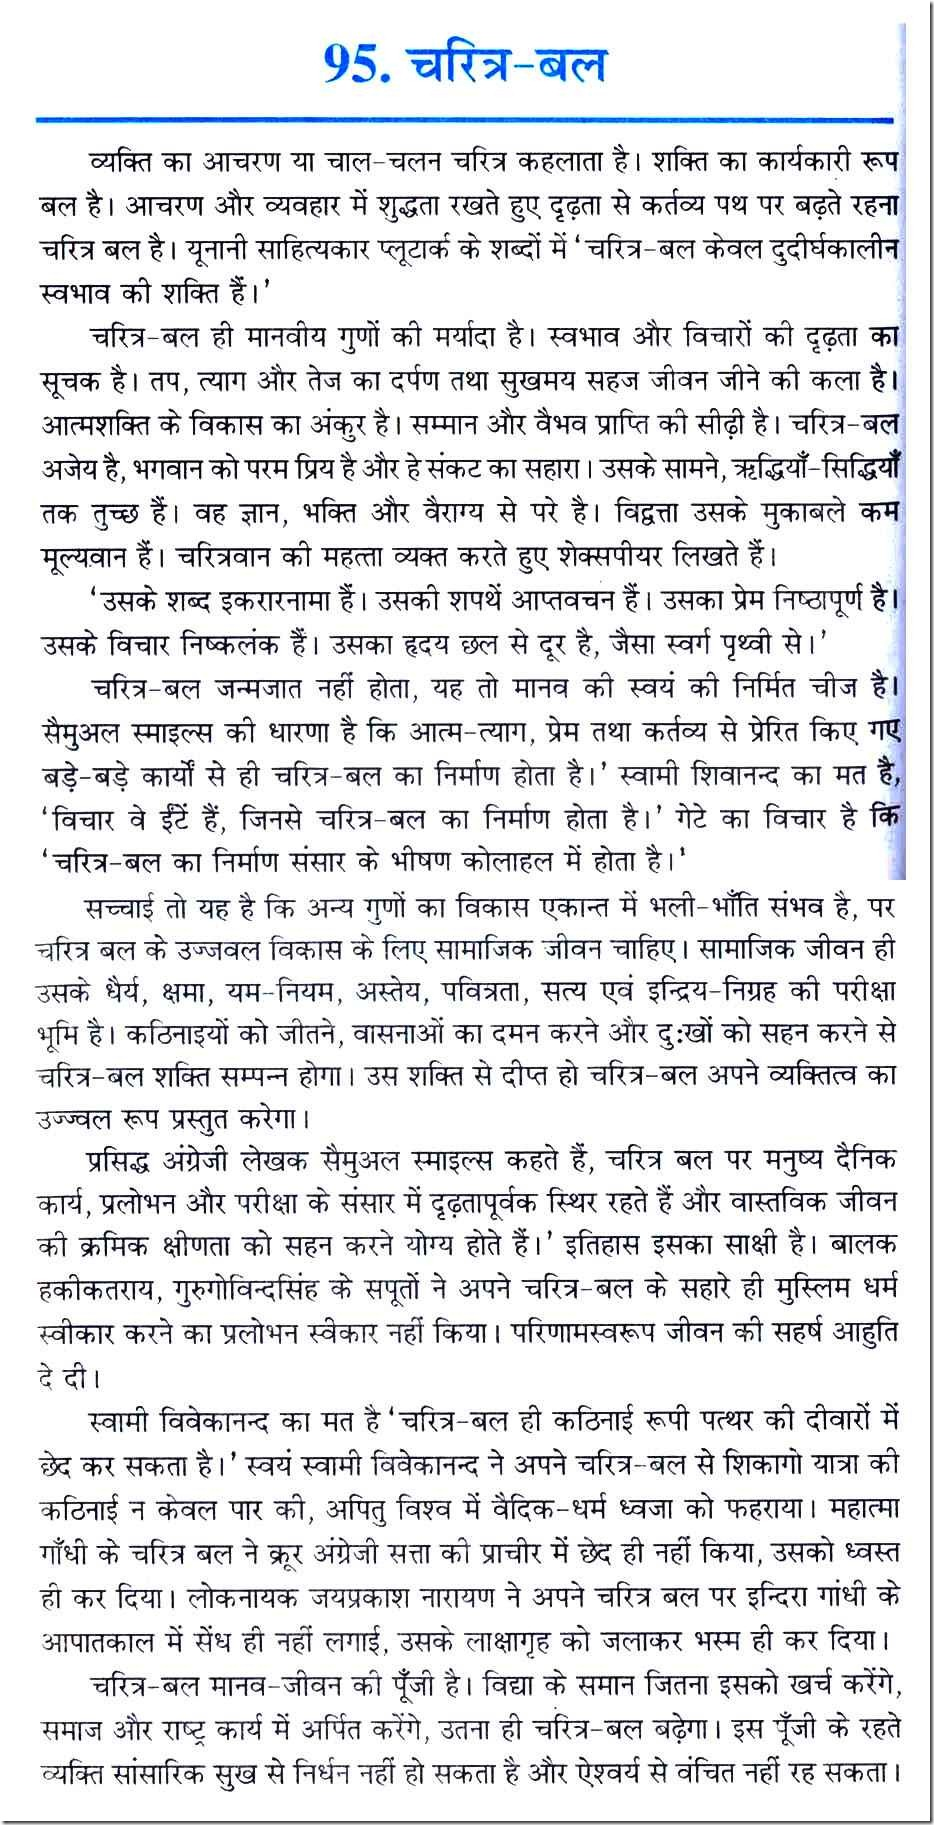 014 Essay On Electricity In Hindi Example Essays The Power Of Imposing Veto Youth Problem Language Full